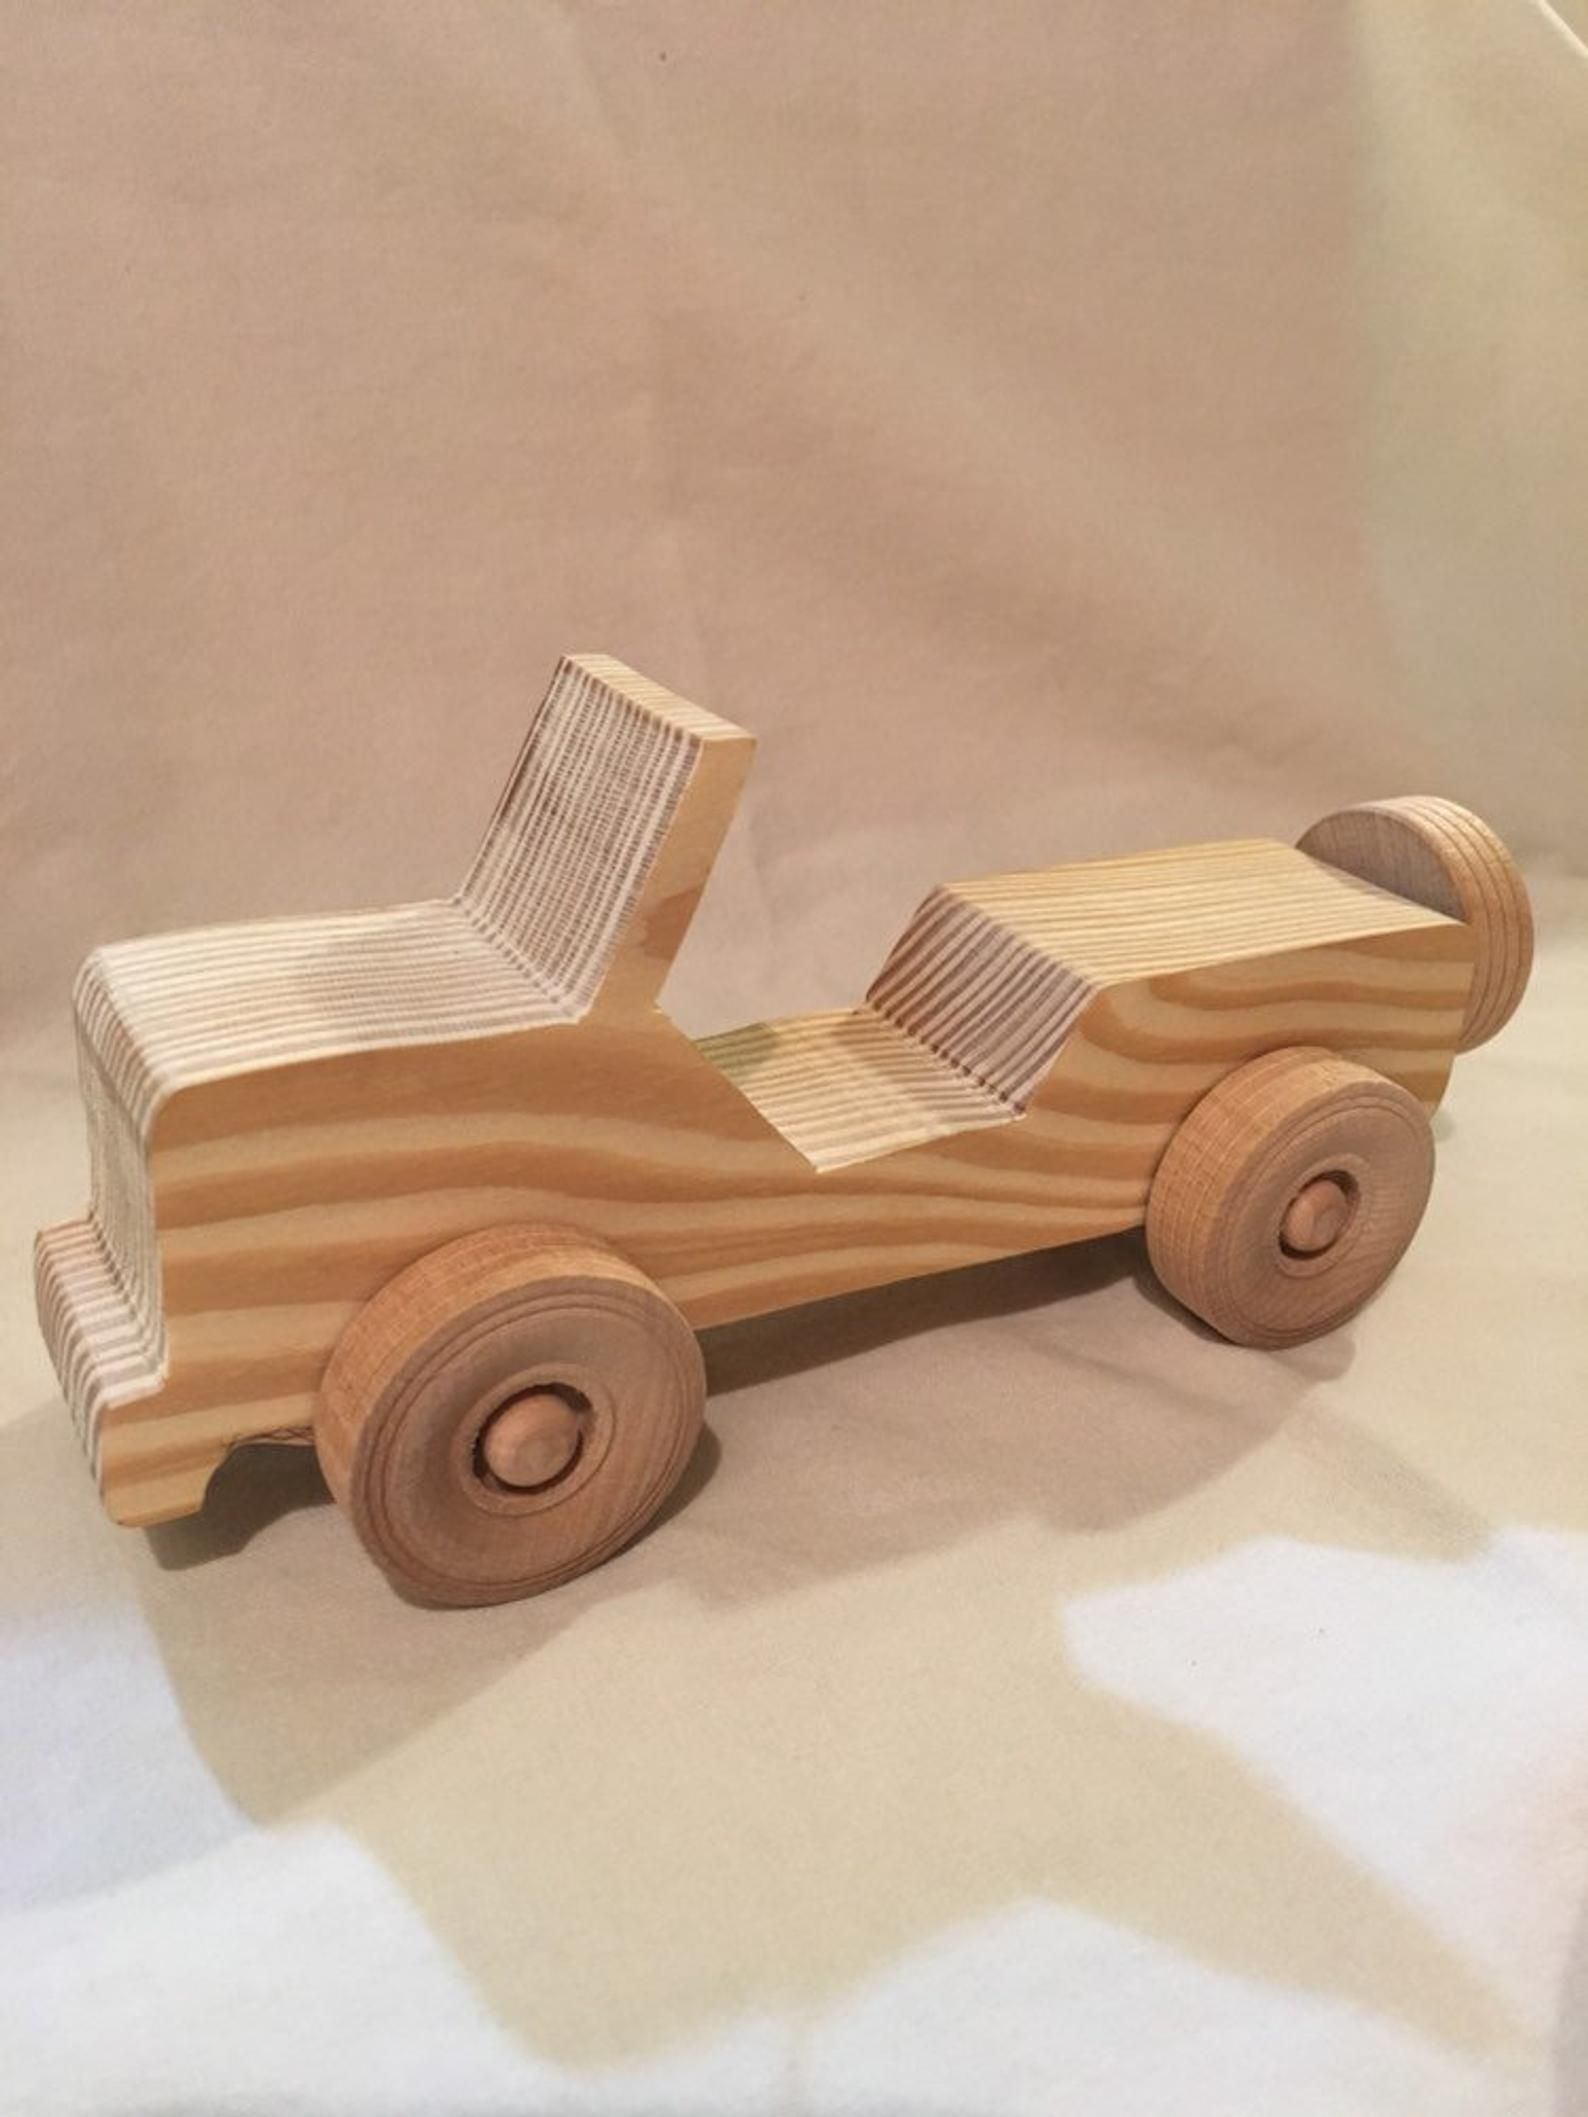 wooden jeep | etsy | wood stuff | wood toys plans, wood toys